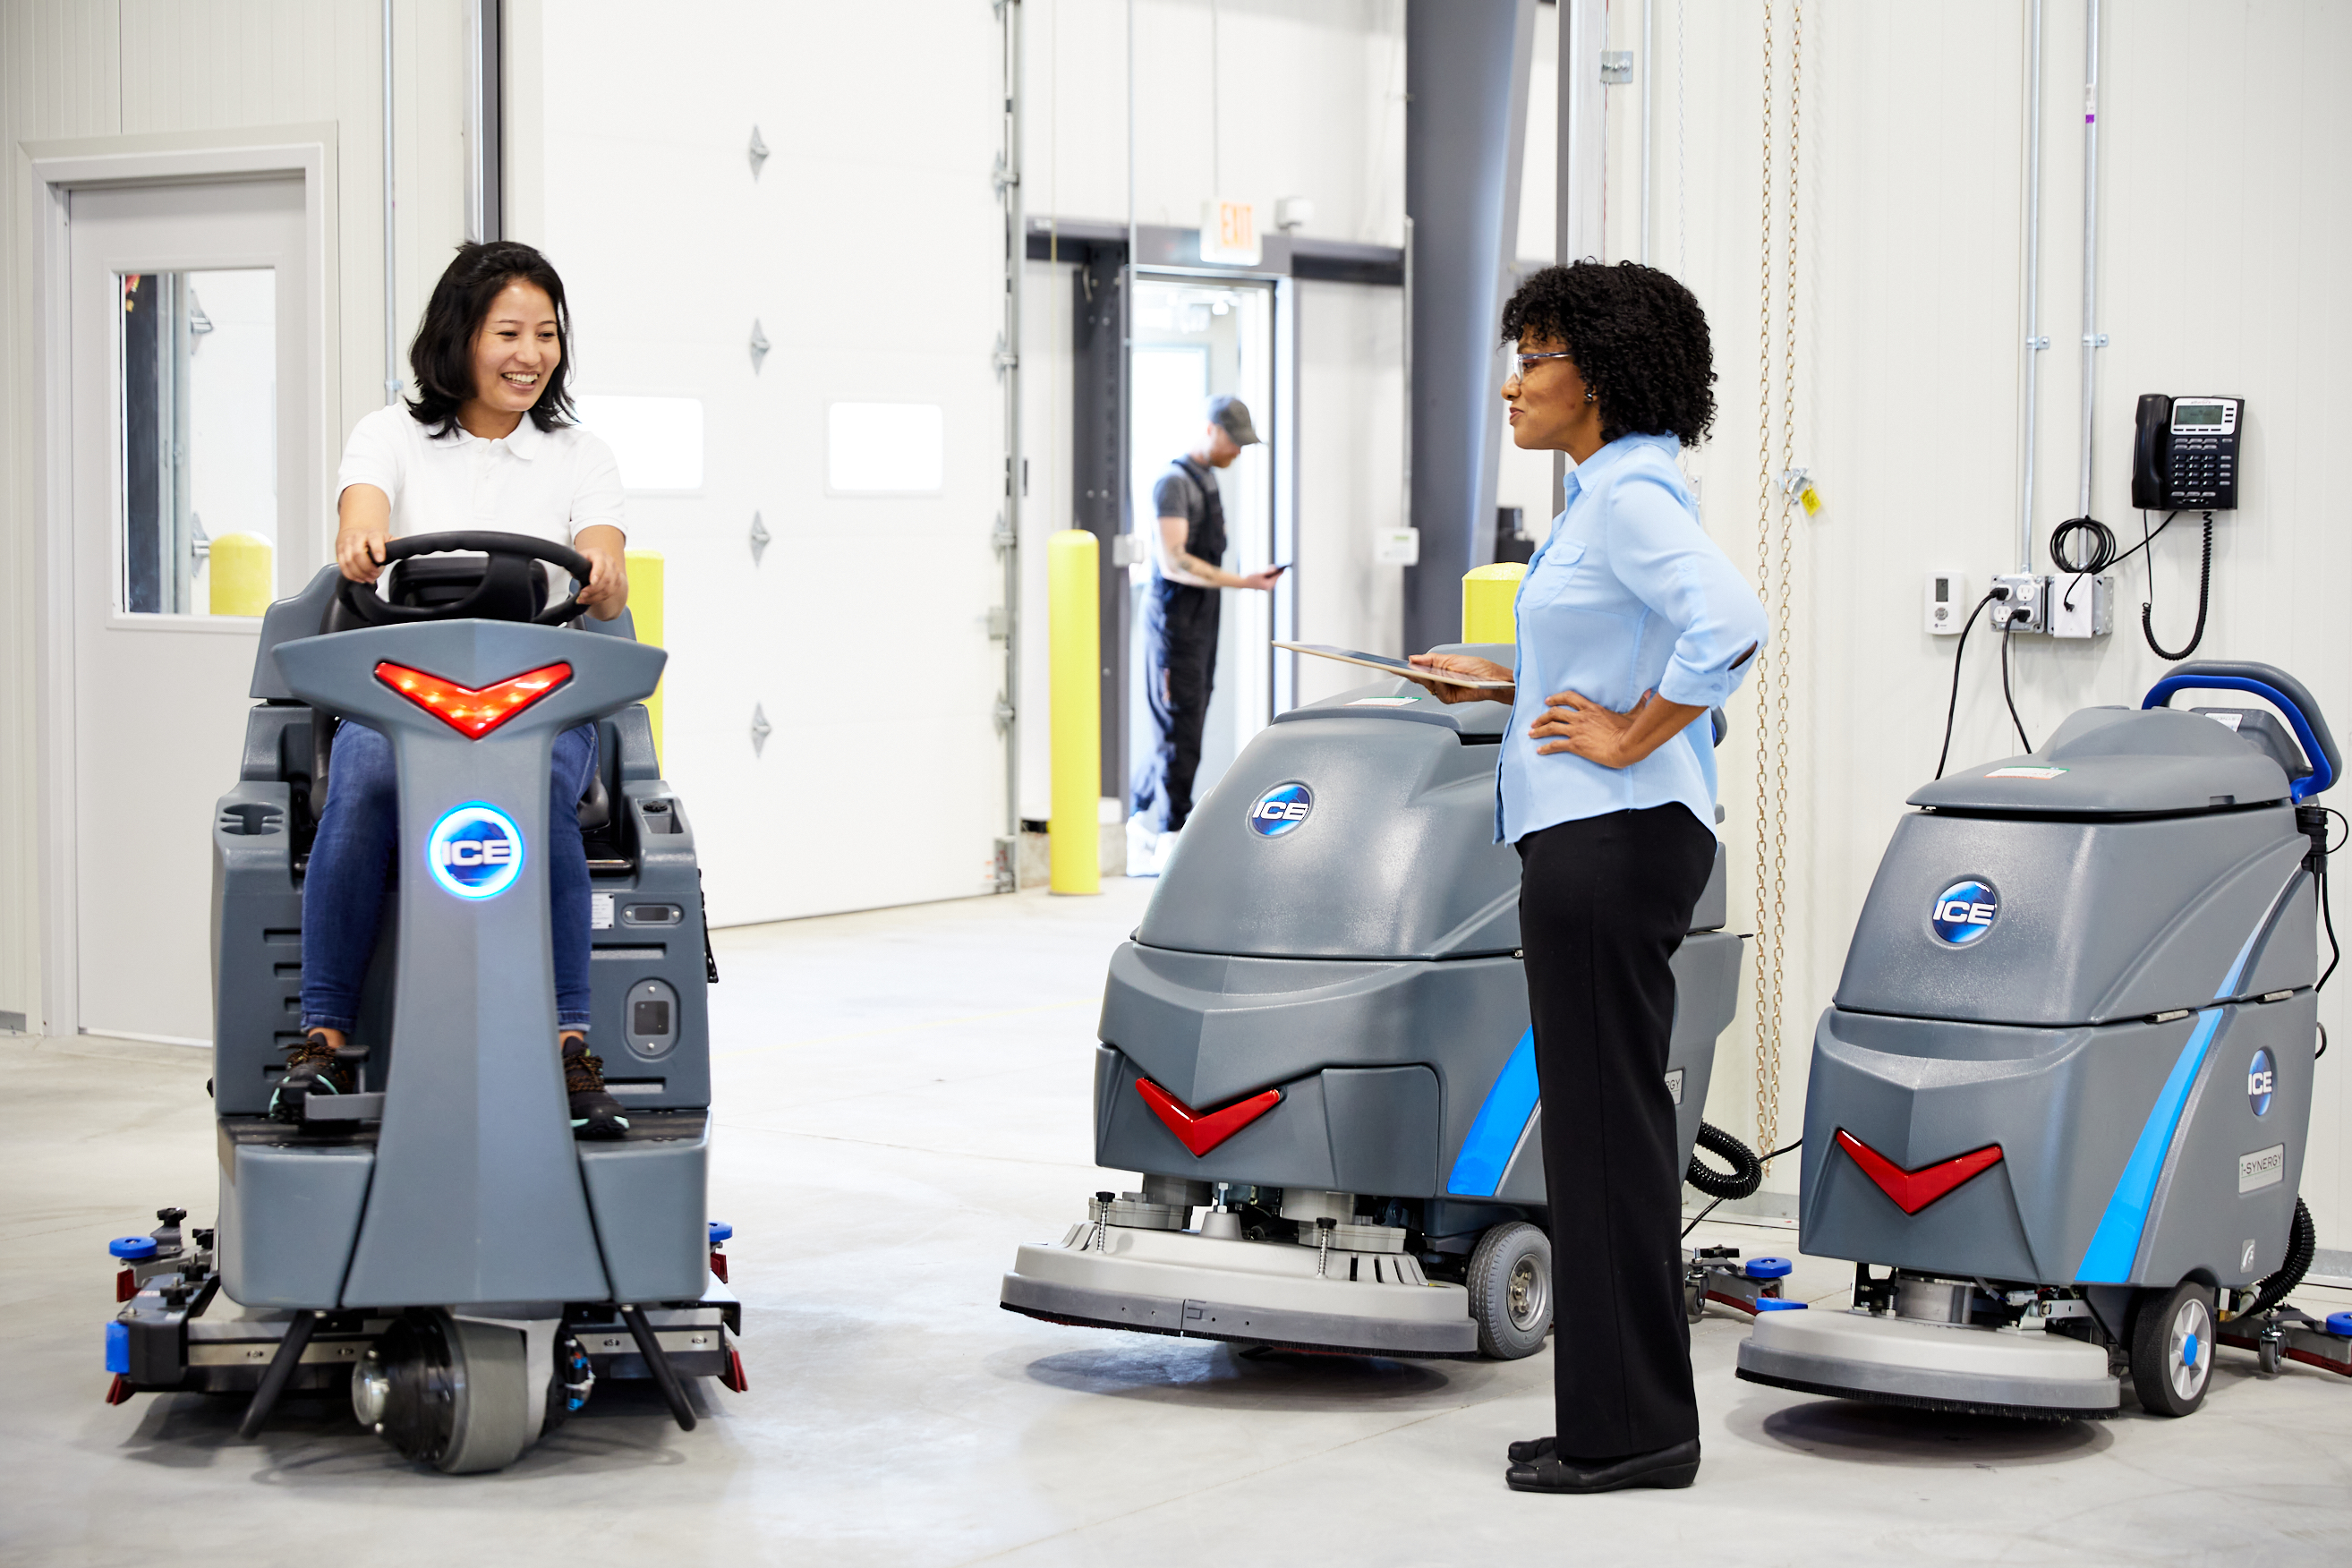 Women on a ride-on floor scrubber entering a warehouse with a lady standing next to multiple floor scrubbers